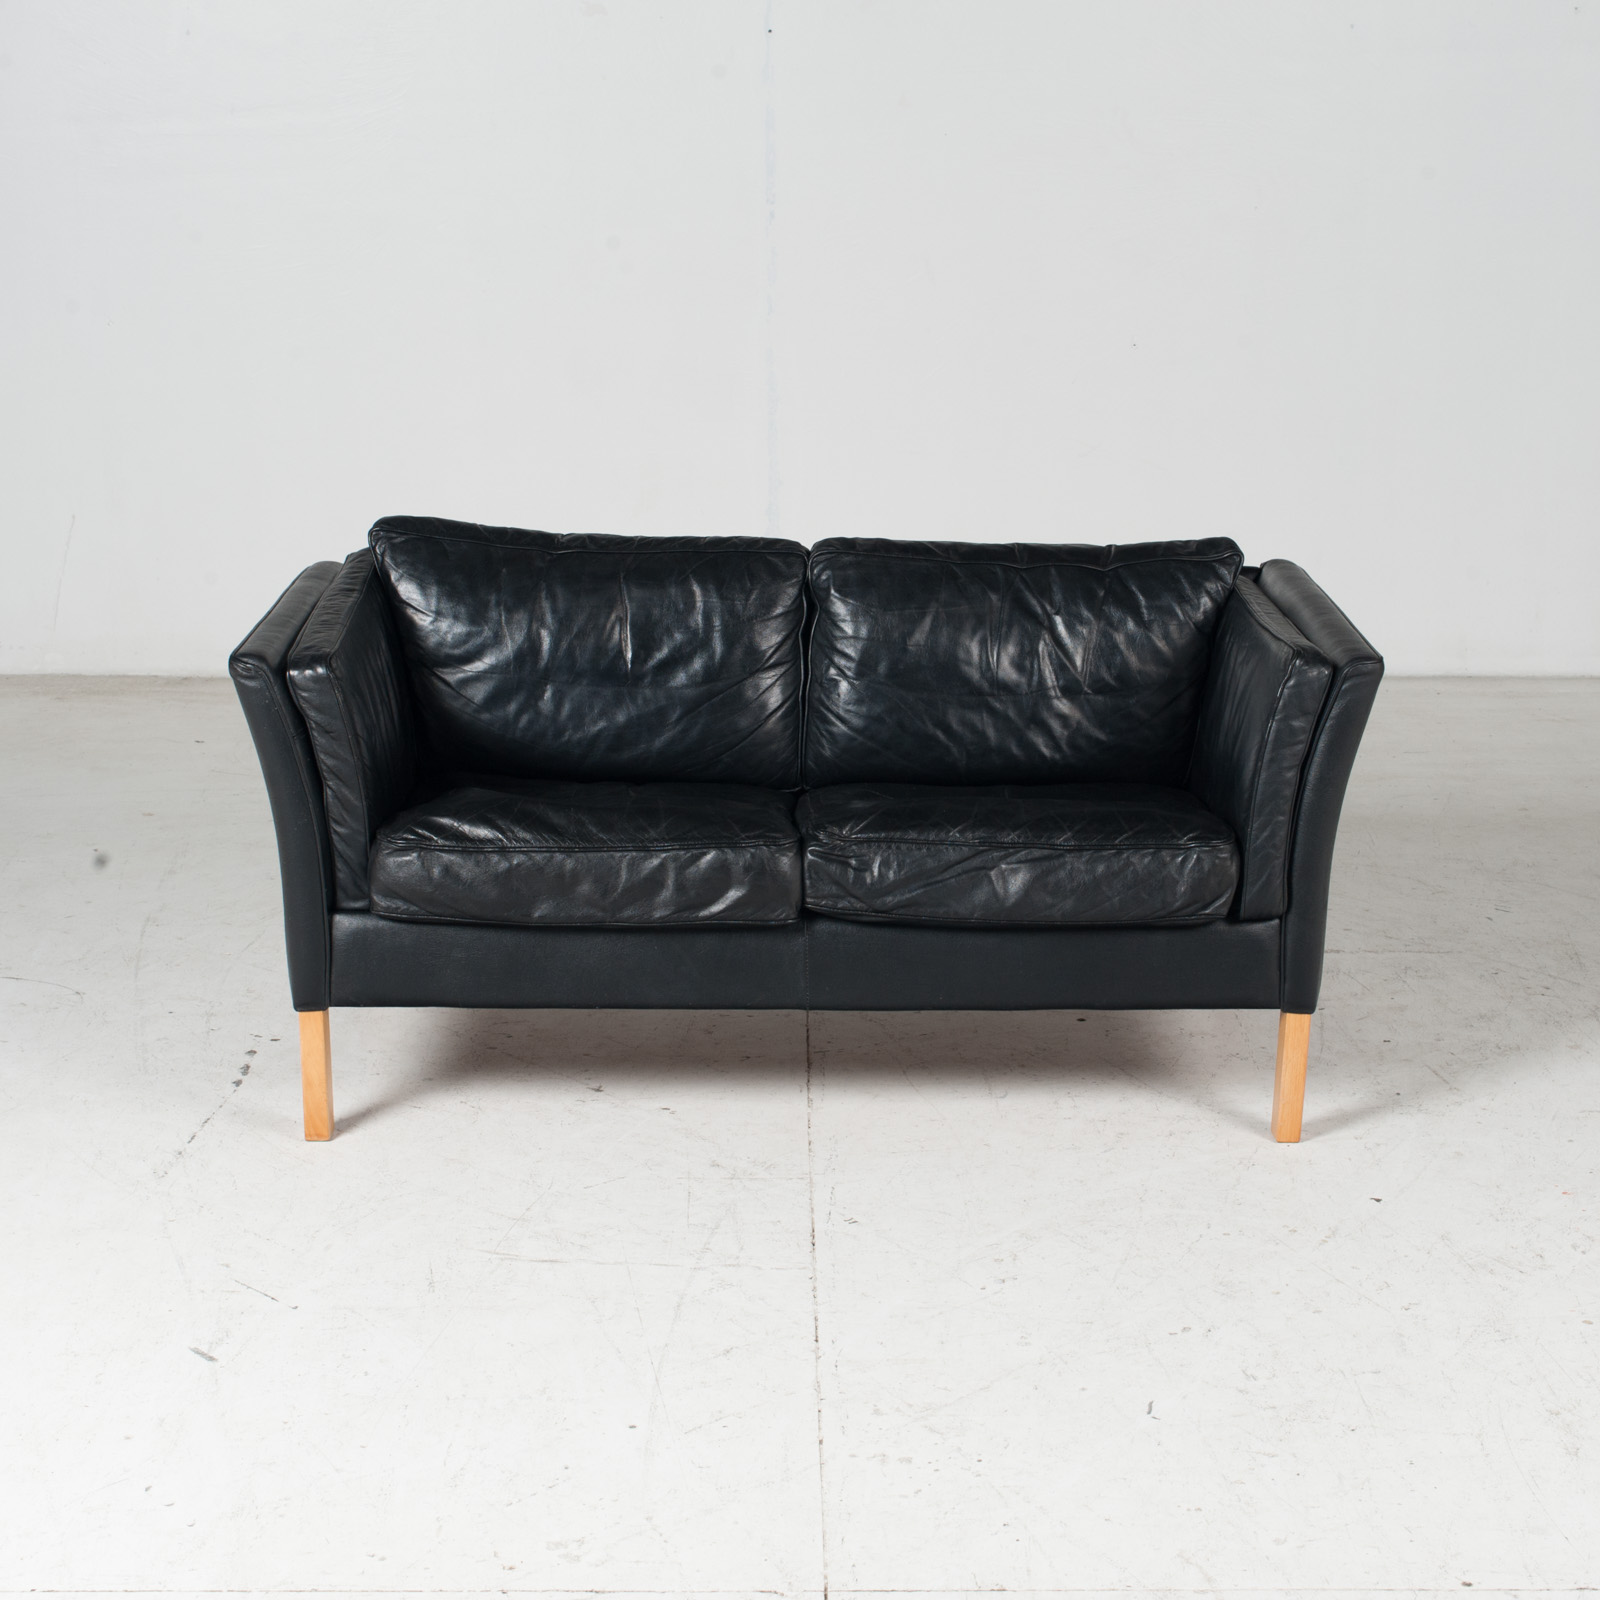 2 Seat Sofa By Stouby In Black Leather With Beech Legs, 1960s, Denmark 2